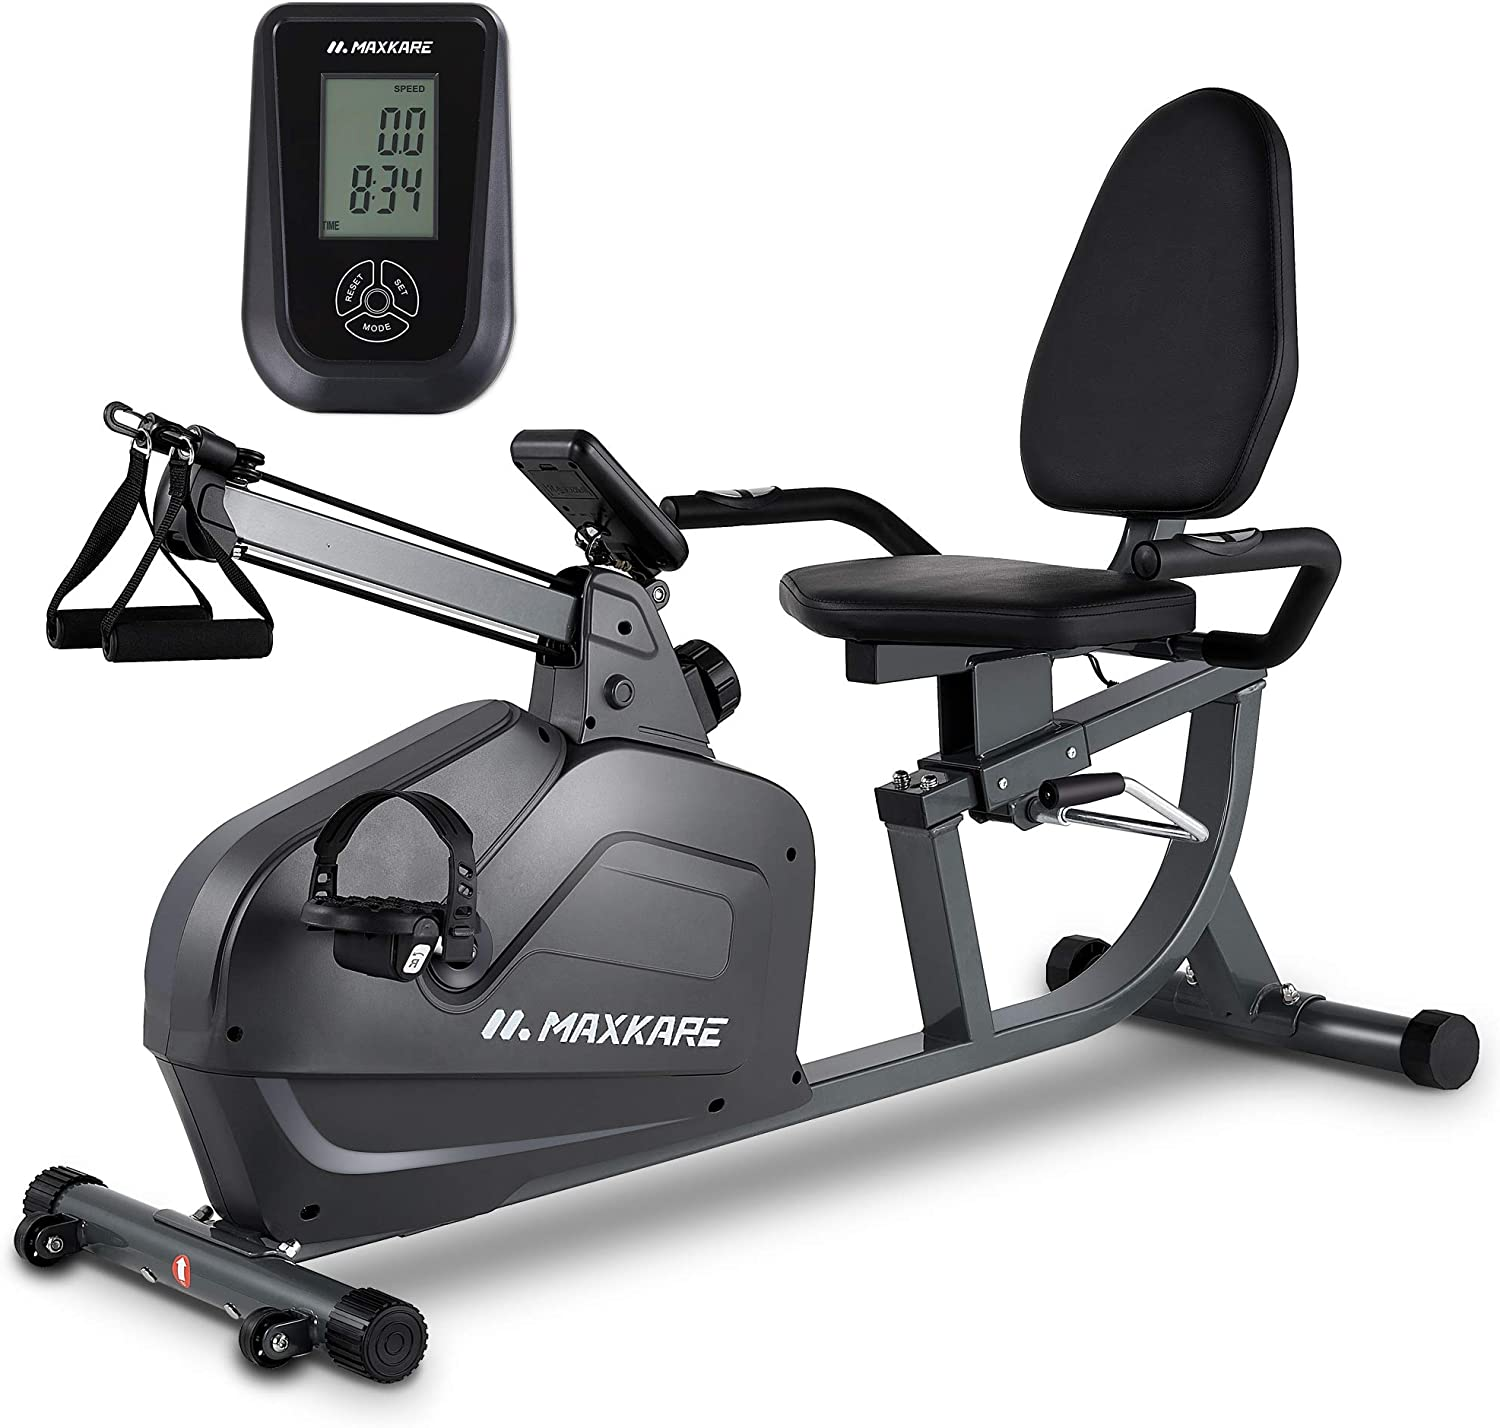 MARNUR Recumbent Exercise Bike Stationary Magnetic Home Exercise Bike with 8 Levels Adjustable Resistance with LCD Monitor /& Ipad Holder for Men and Women